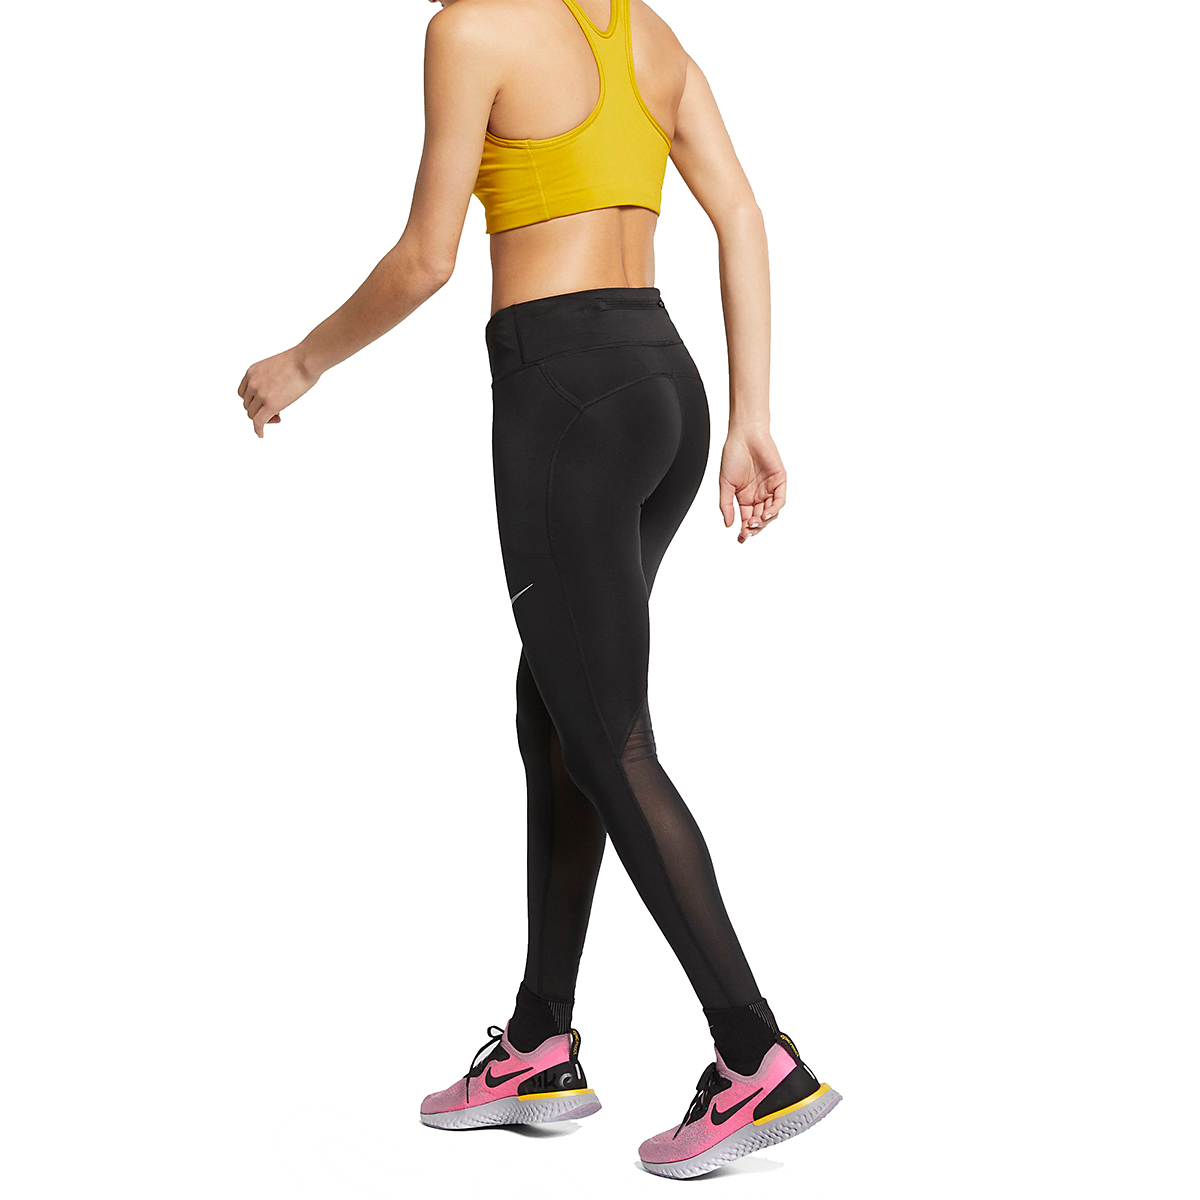 Women's Nike Fast Running Tights - Color: Black - Size: XS, Black, large, image 3